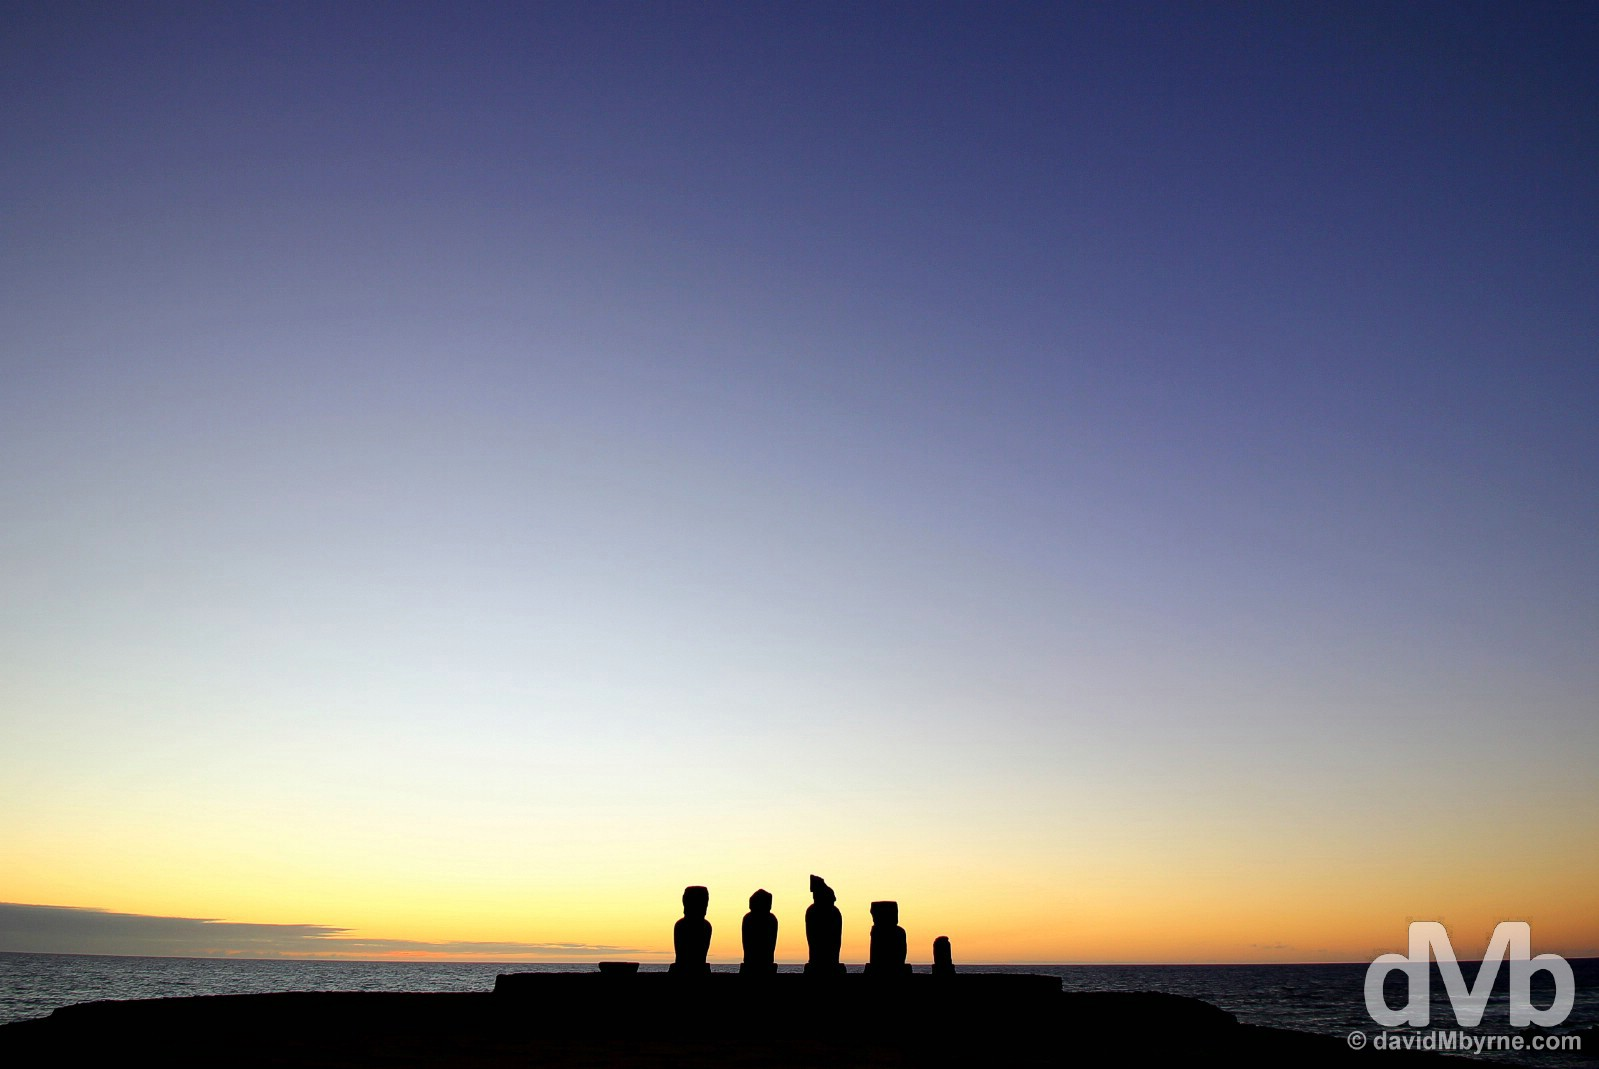 Post sunset silhouette at Tahai, Easter Island. September 30, 2015.